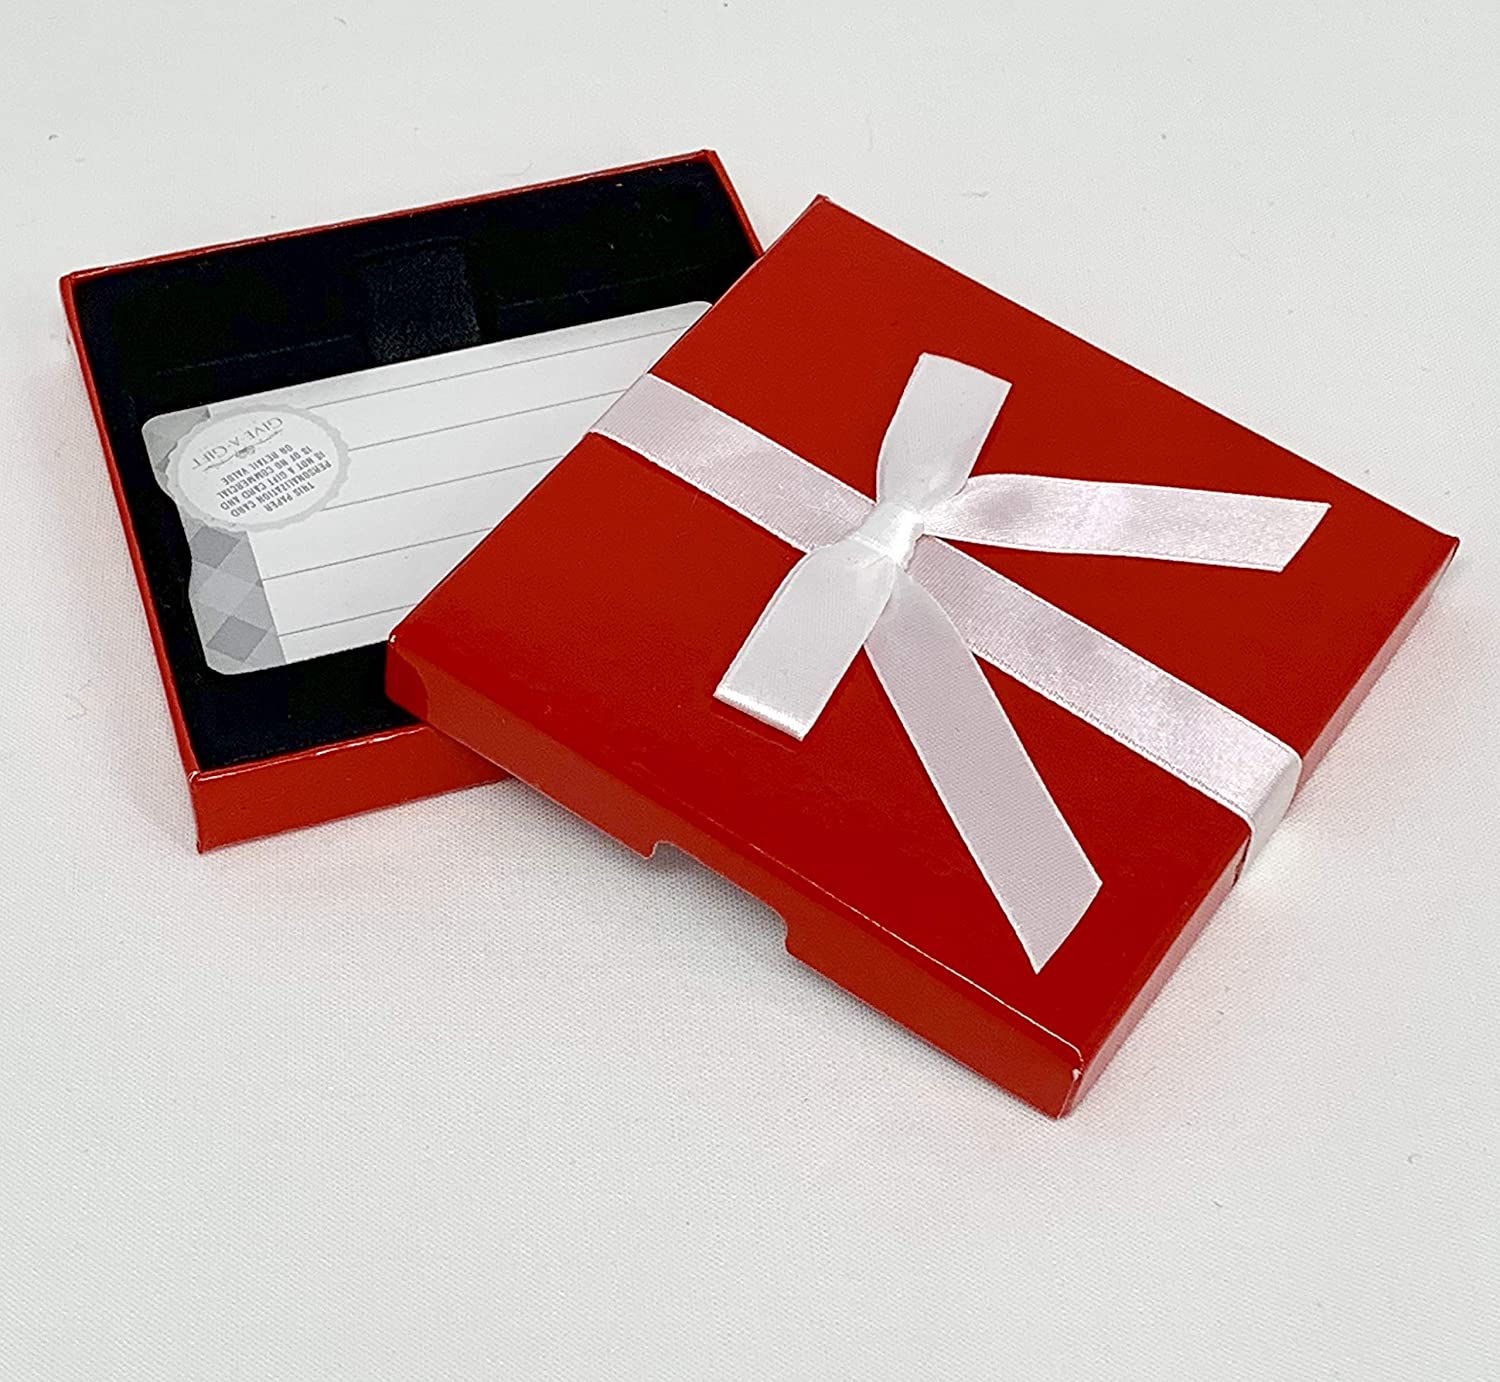 Gift Card Holder - Gift Card Box, Red white Ribbon Box, Great for Christmas Gift Cards, Pack of 3 Bodima